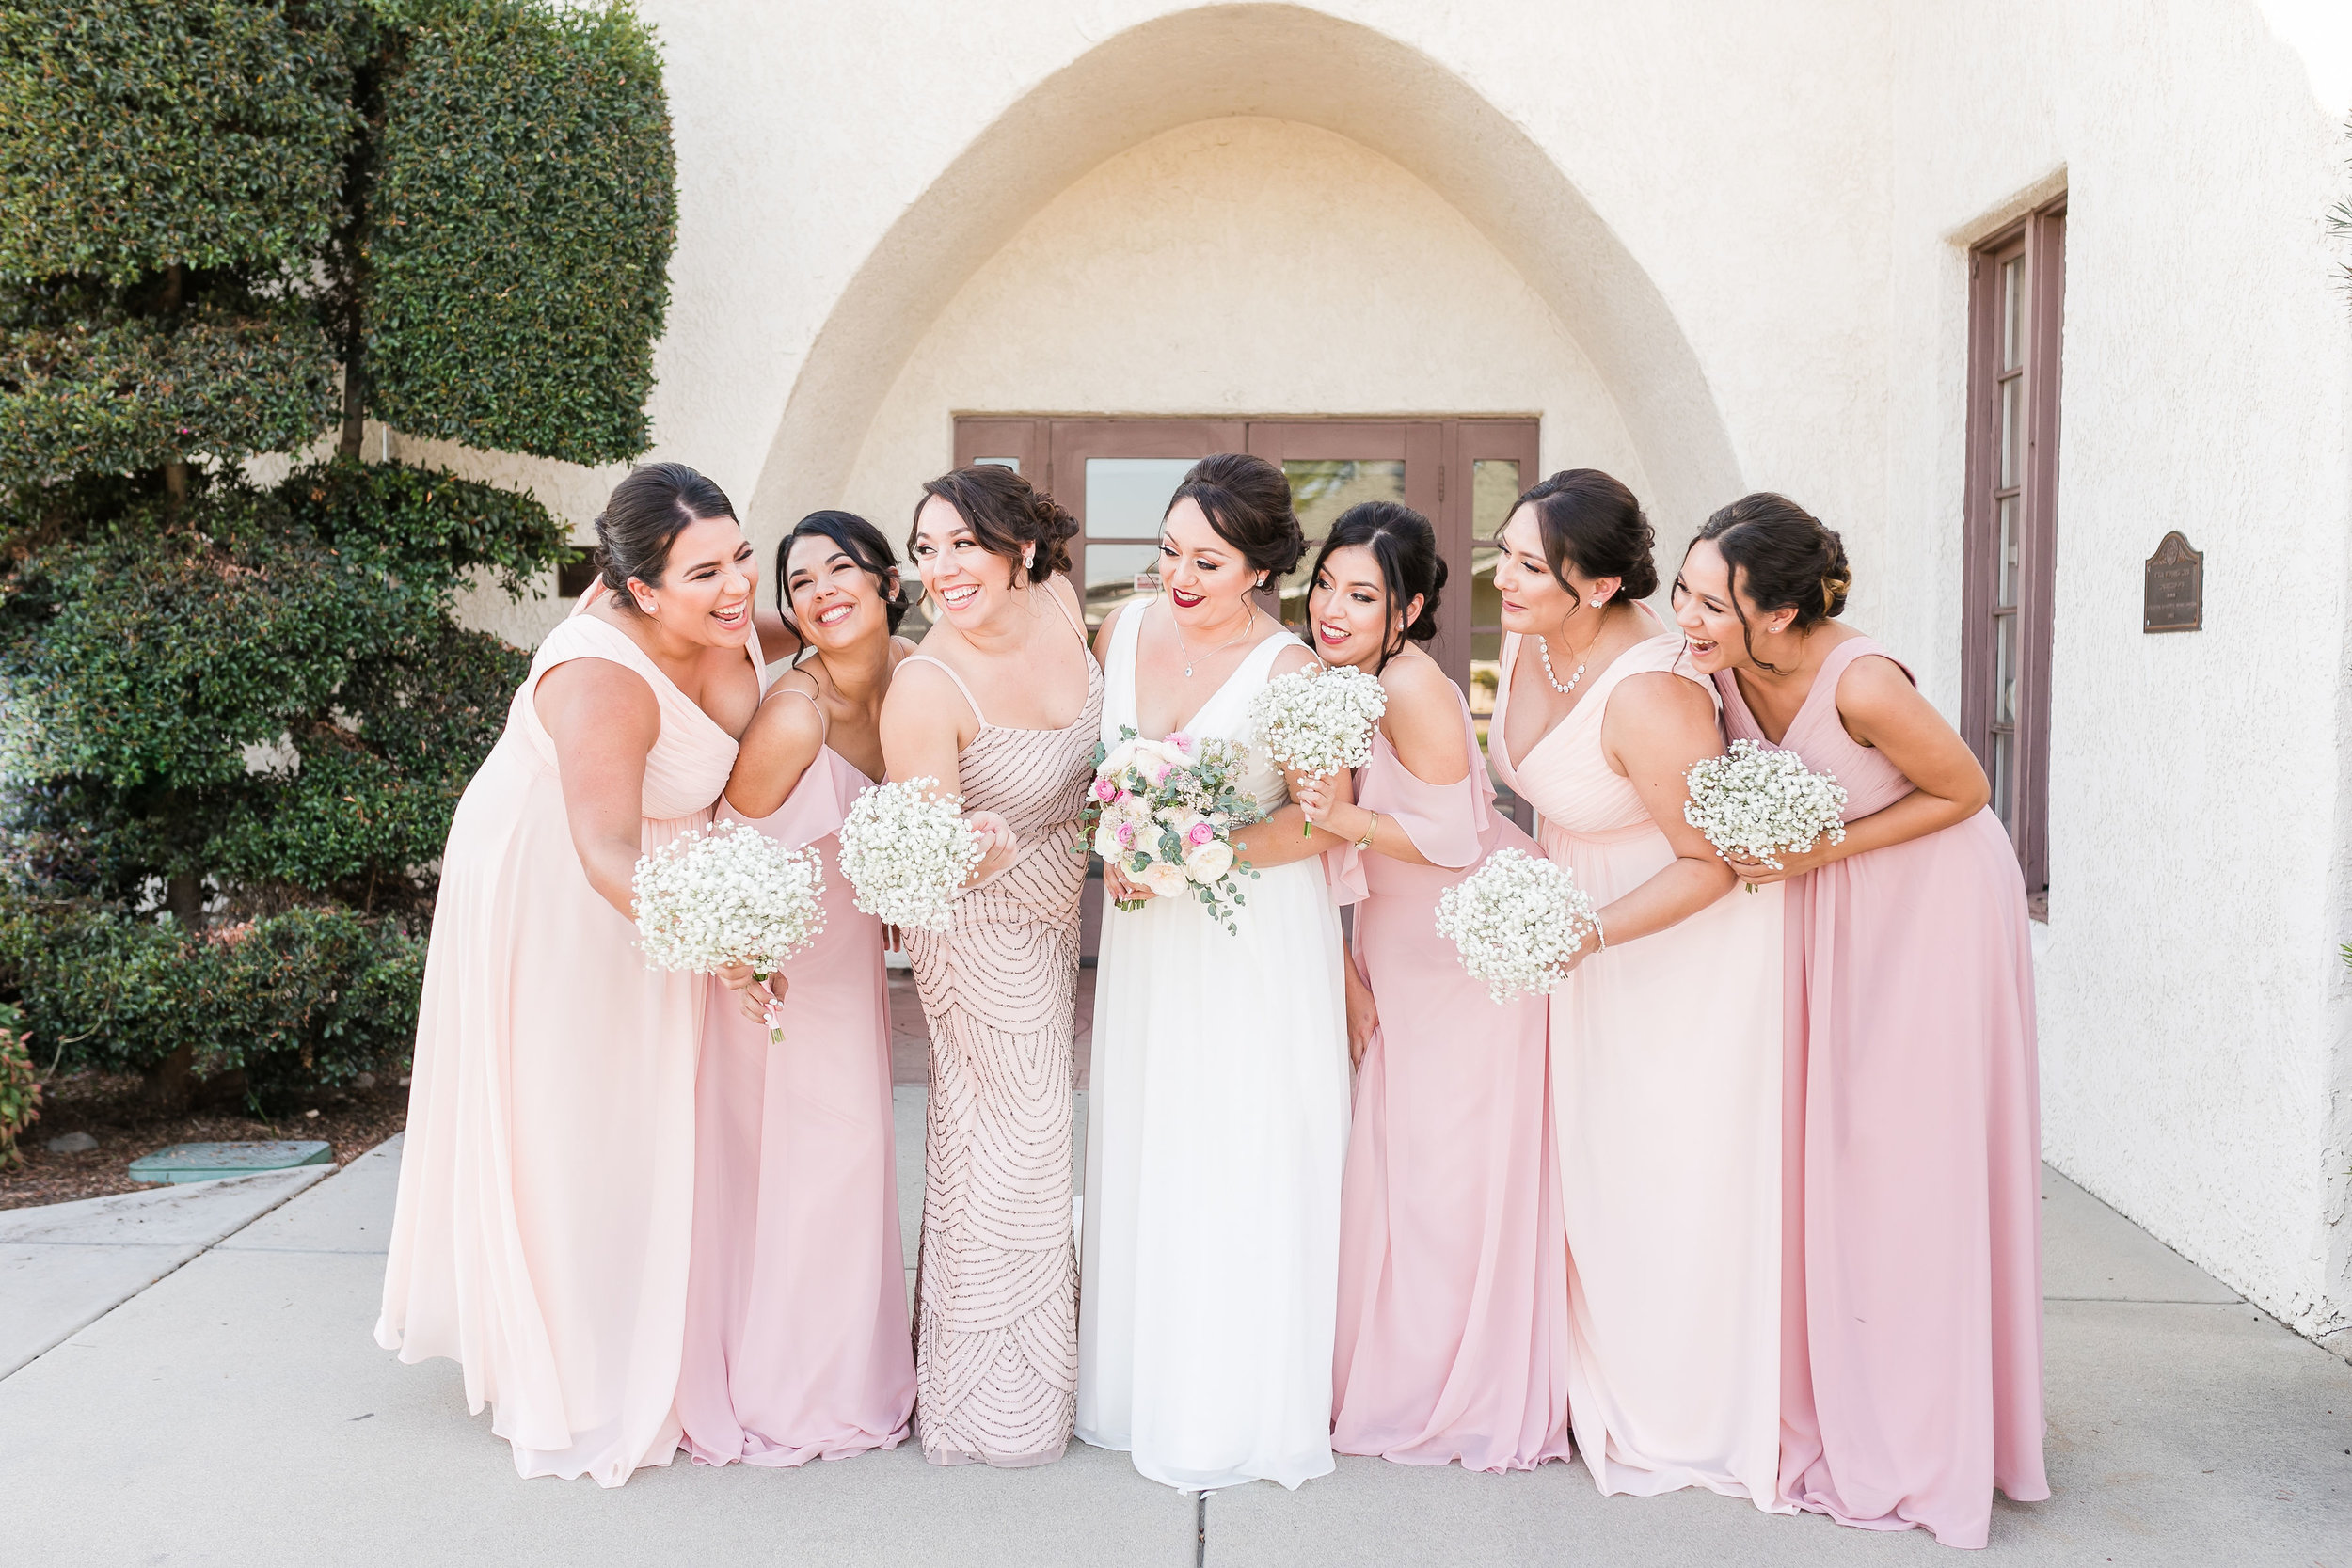 Hair on Bridesmaids by Lulu Bernal, Photo by: Staci Stack Photography